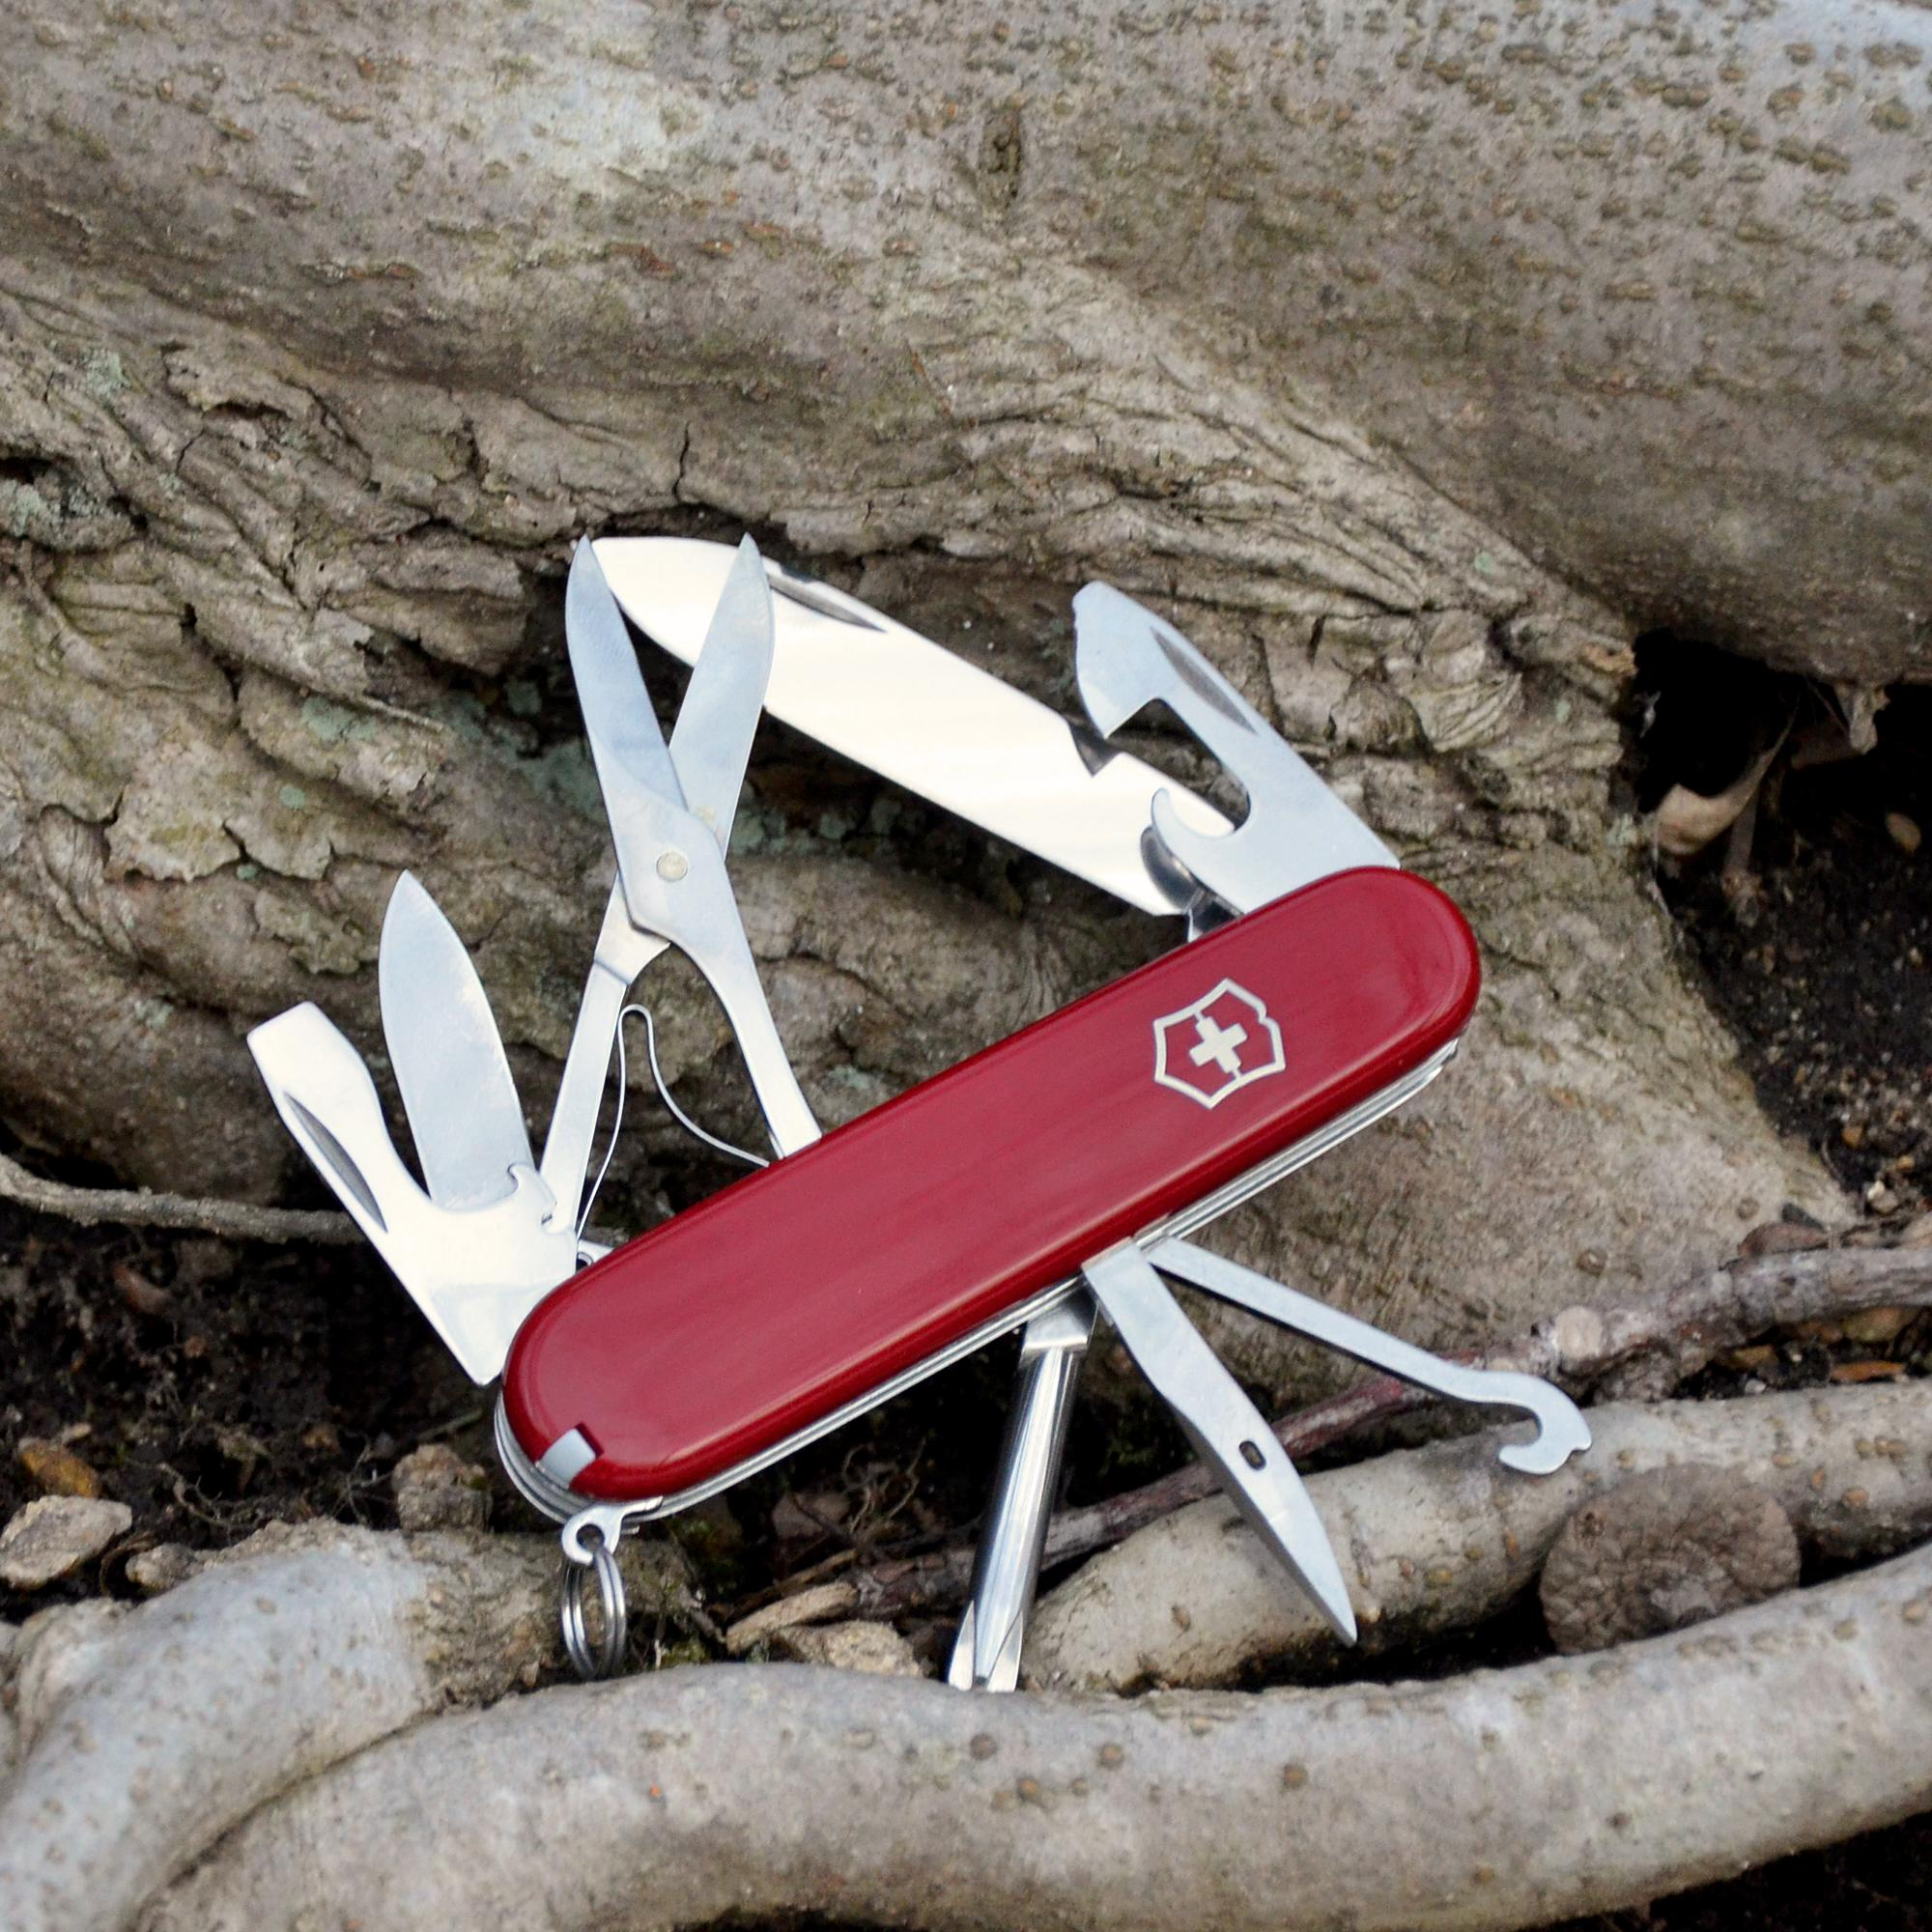 Swiss Army Knife The Ultimate Guide Pocket Knife Info